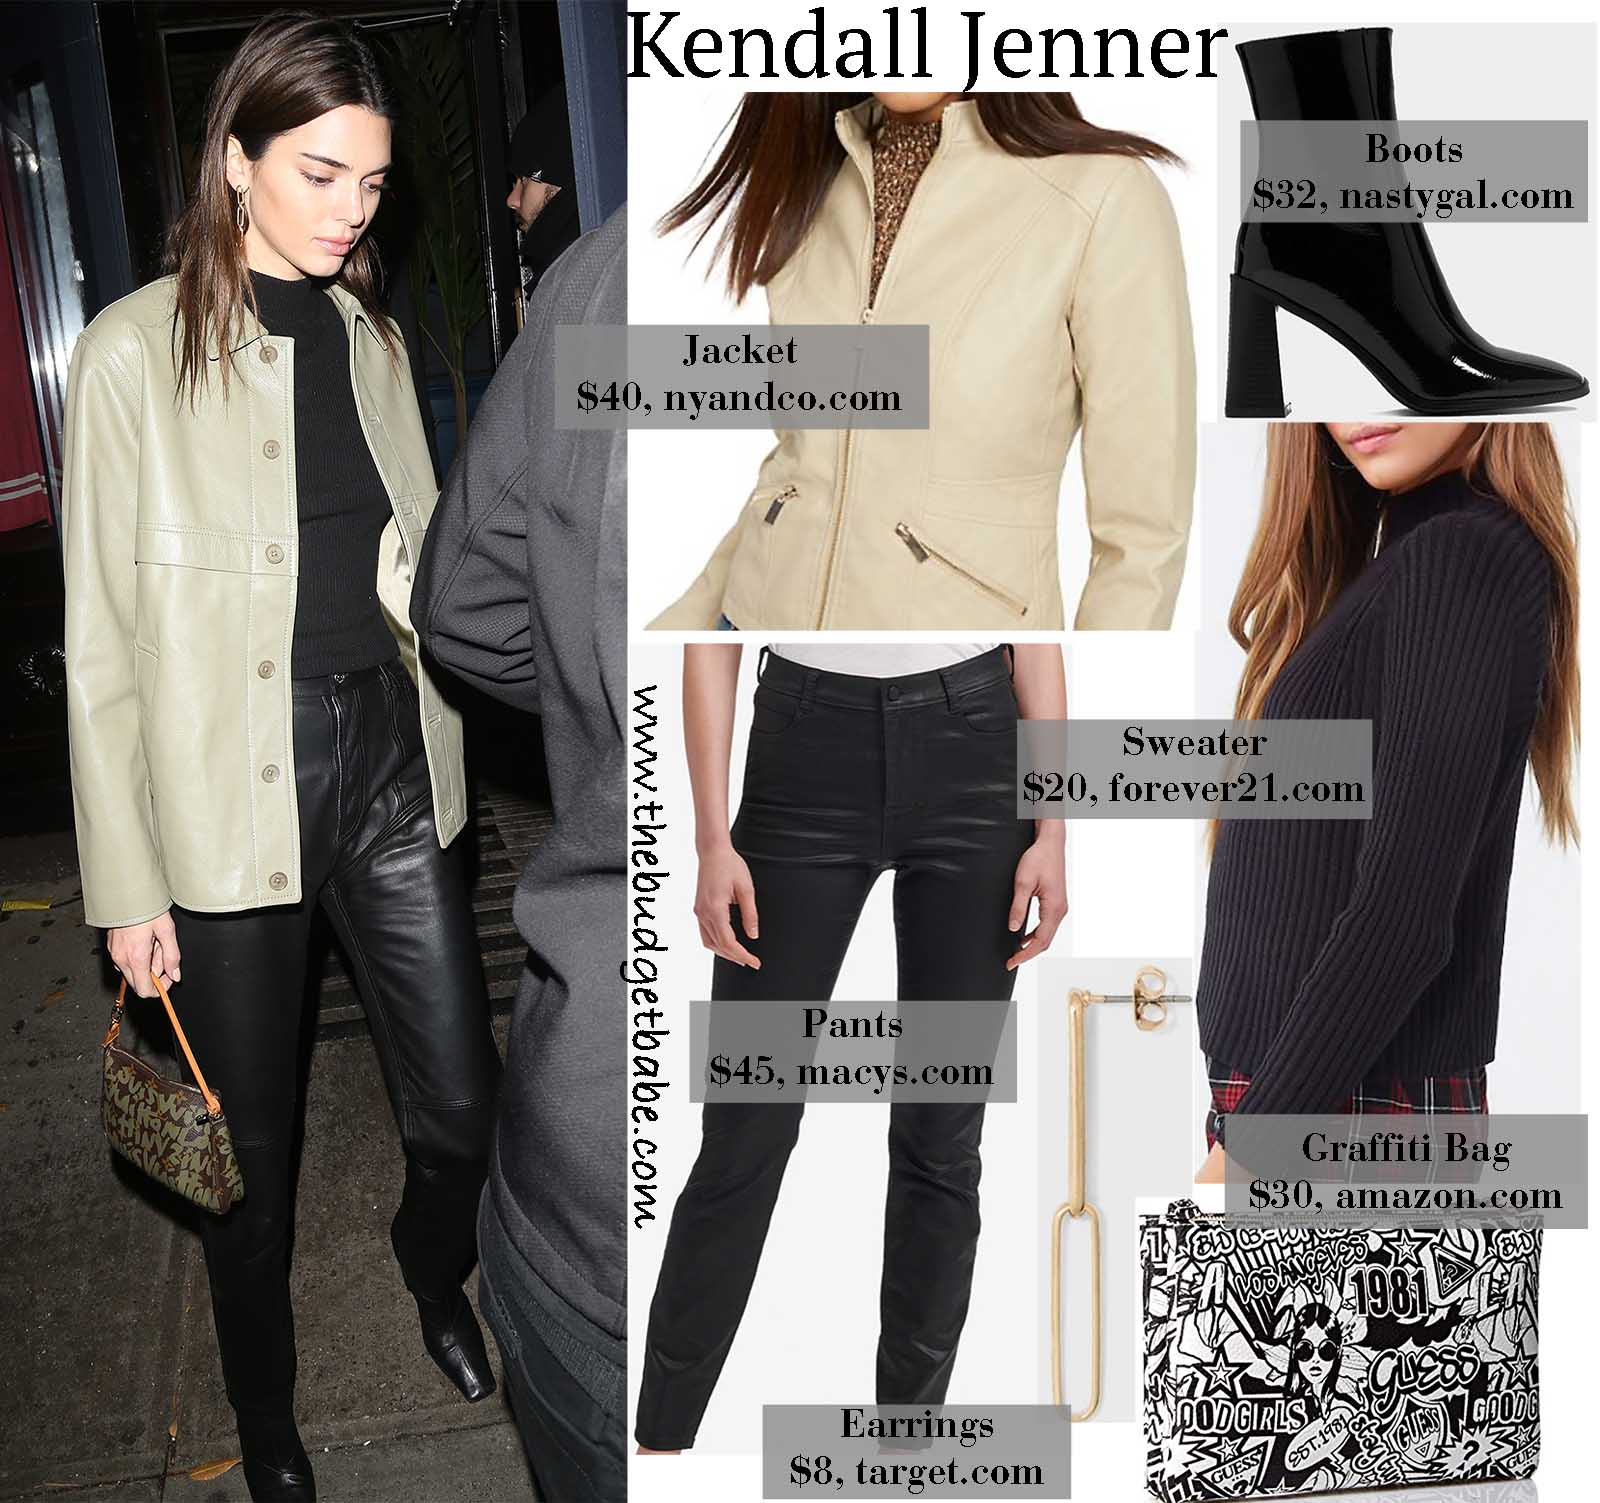 Kendall Jenner keeps it stylish and simple in black and cream!